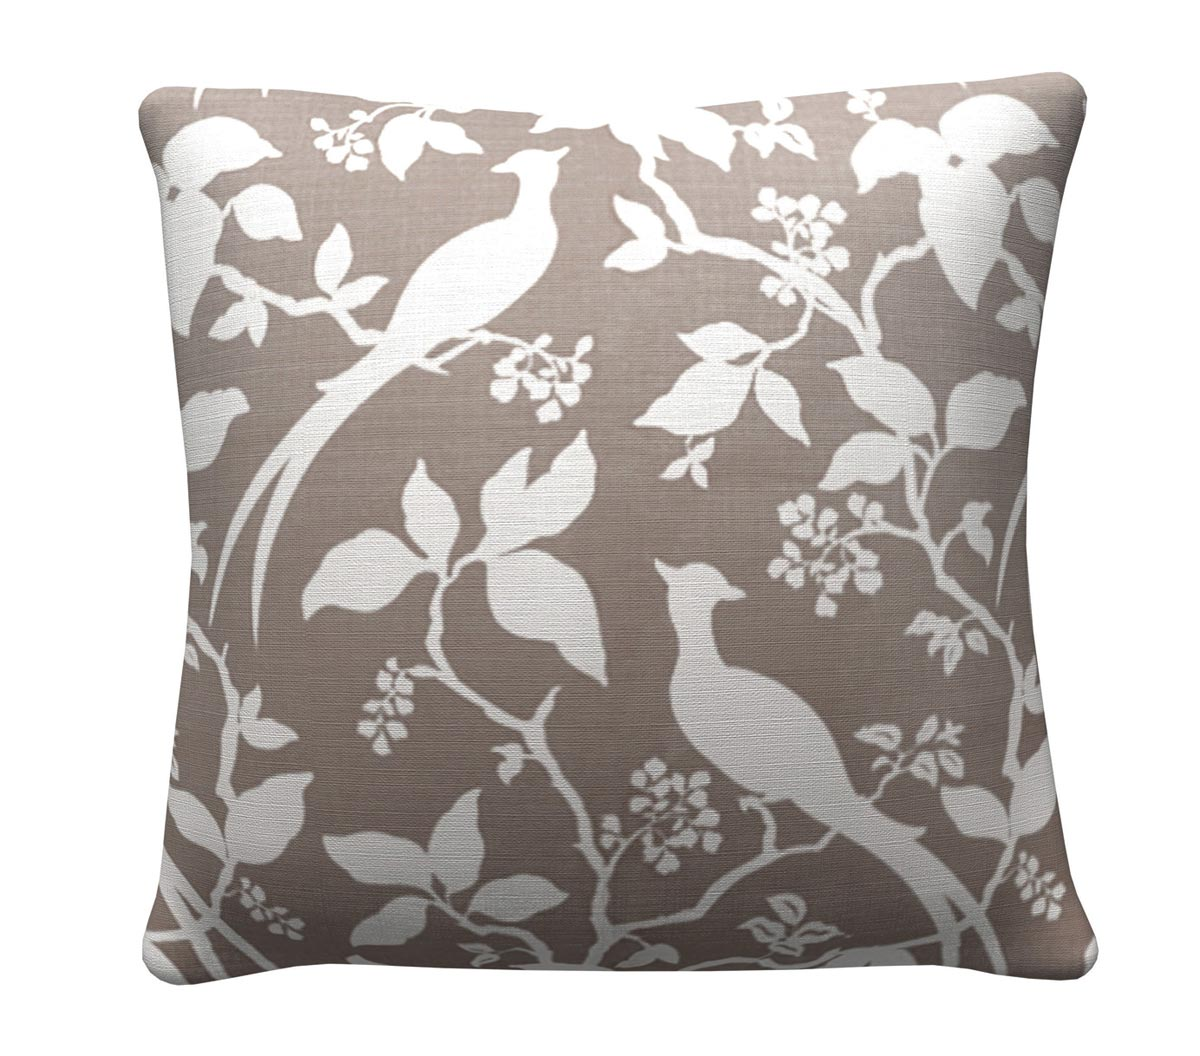 905317 Grey Floral Pillow